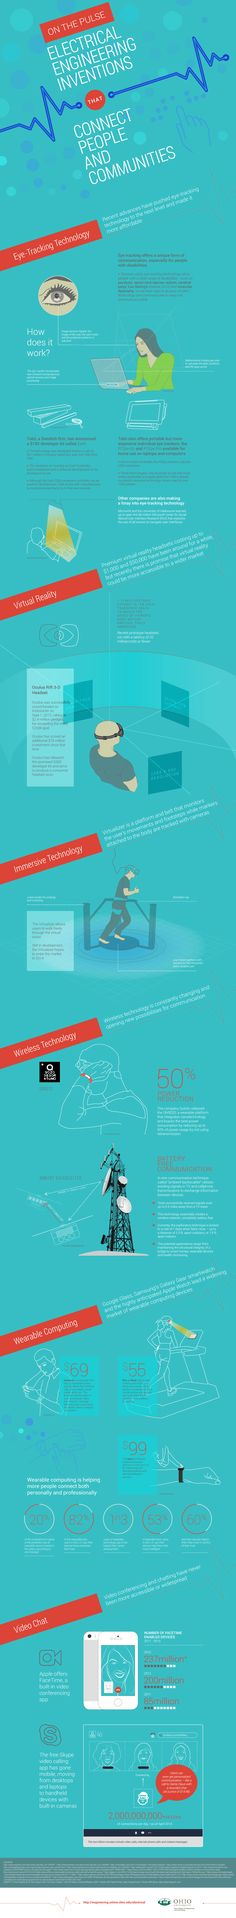 662 best electrical engineering images on pinterest technology 6 technologies that will revolutionize the classroom edudemic a great infographic you can use fandeluxe Image collections